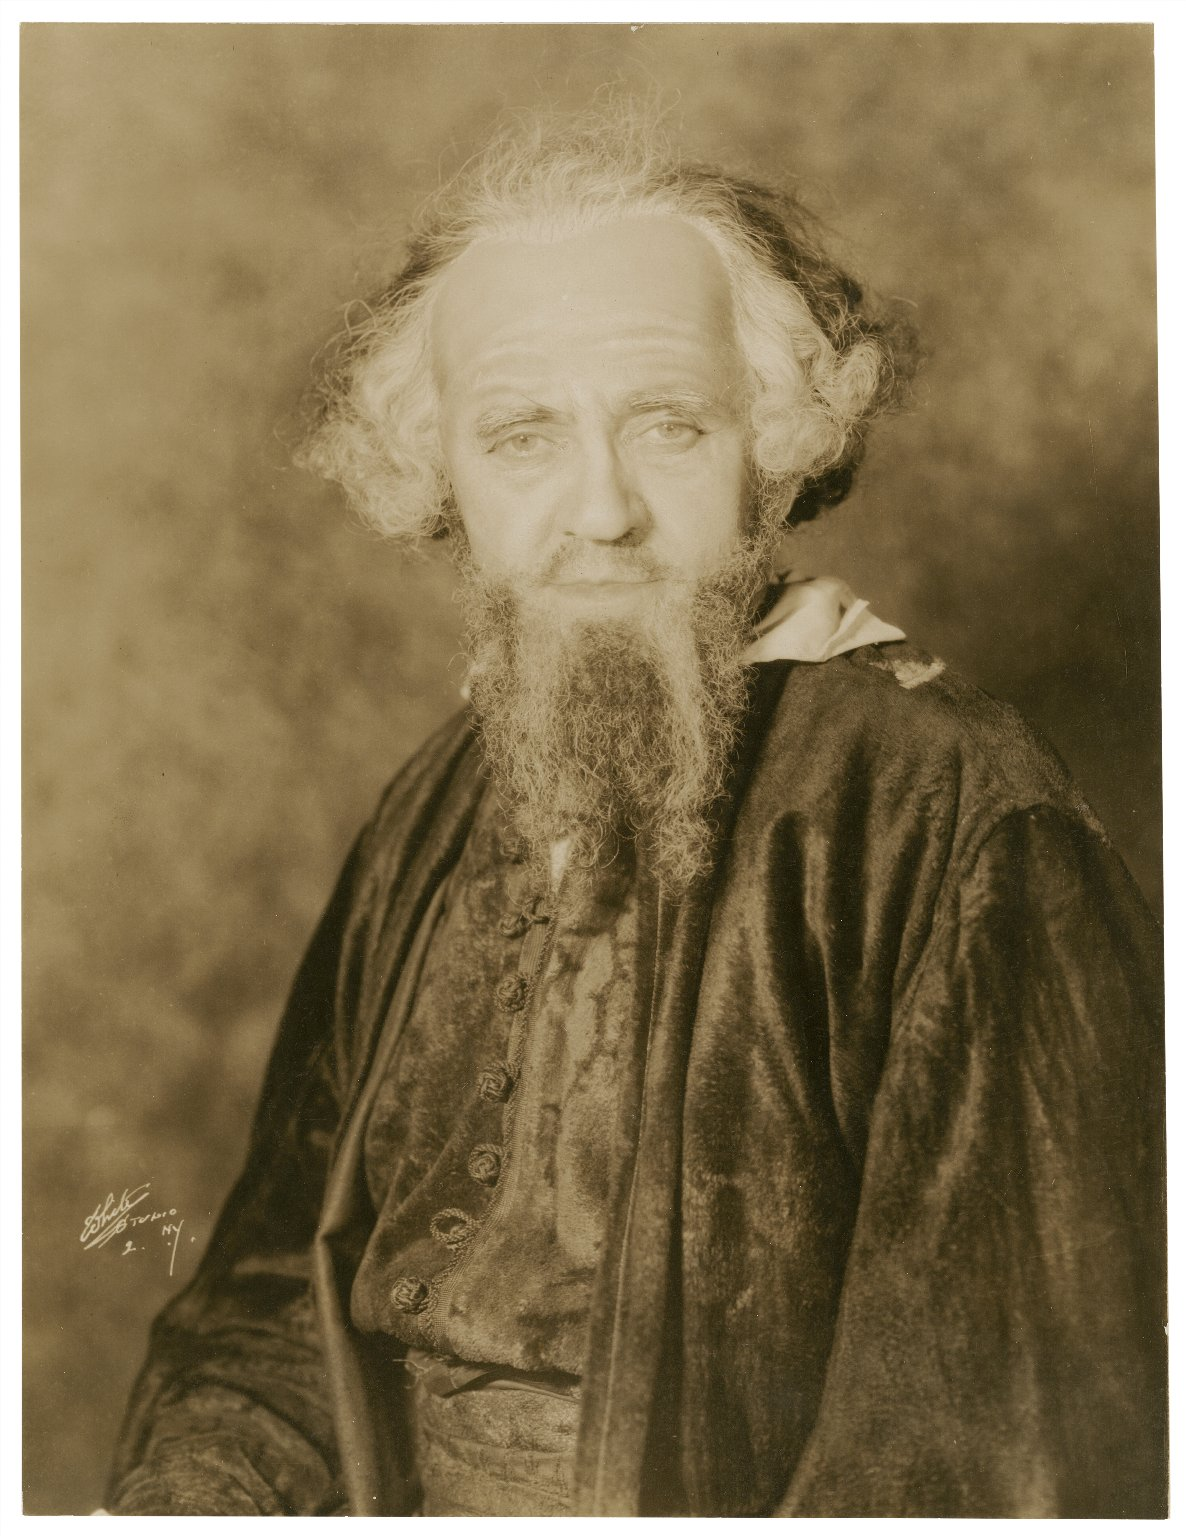 David Warfield [as] Shylock [in Shakespeare Merchant of Venice] [graphic].